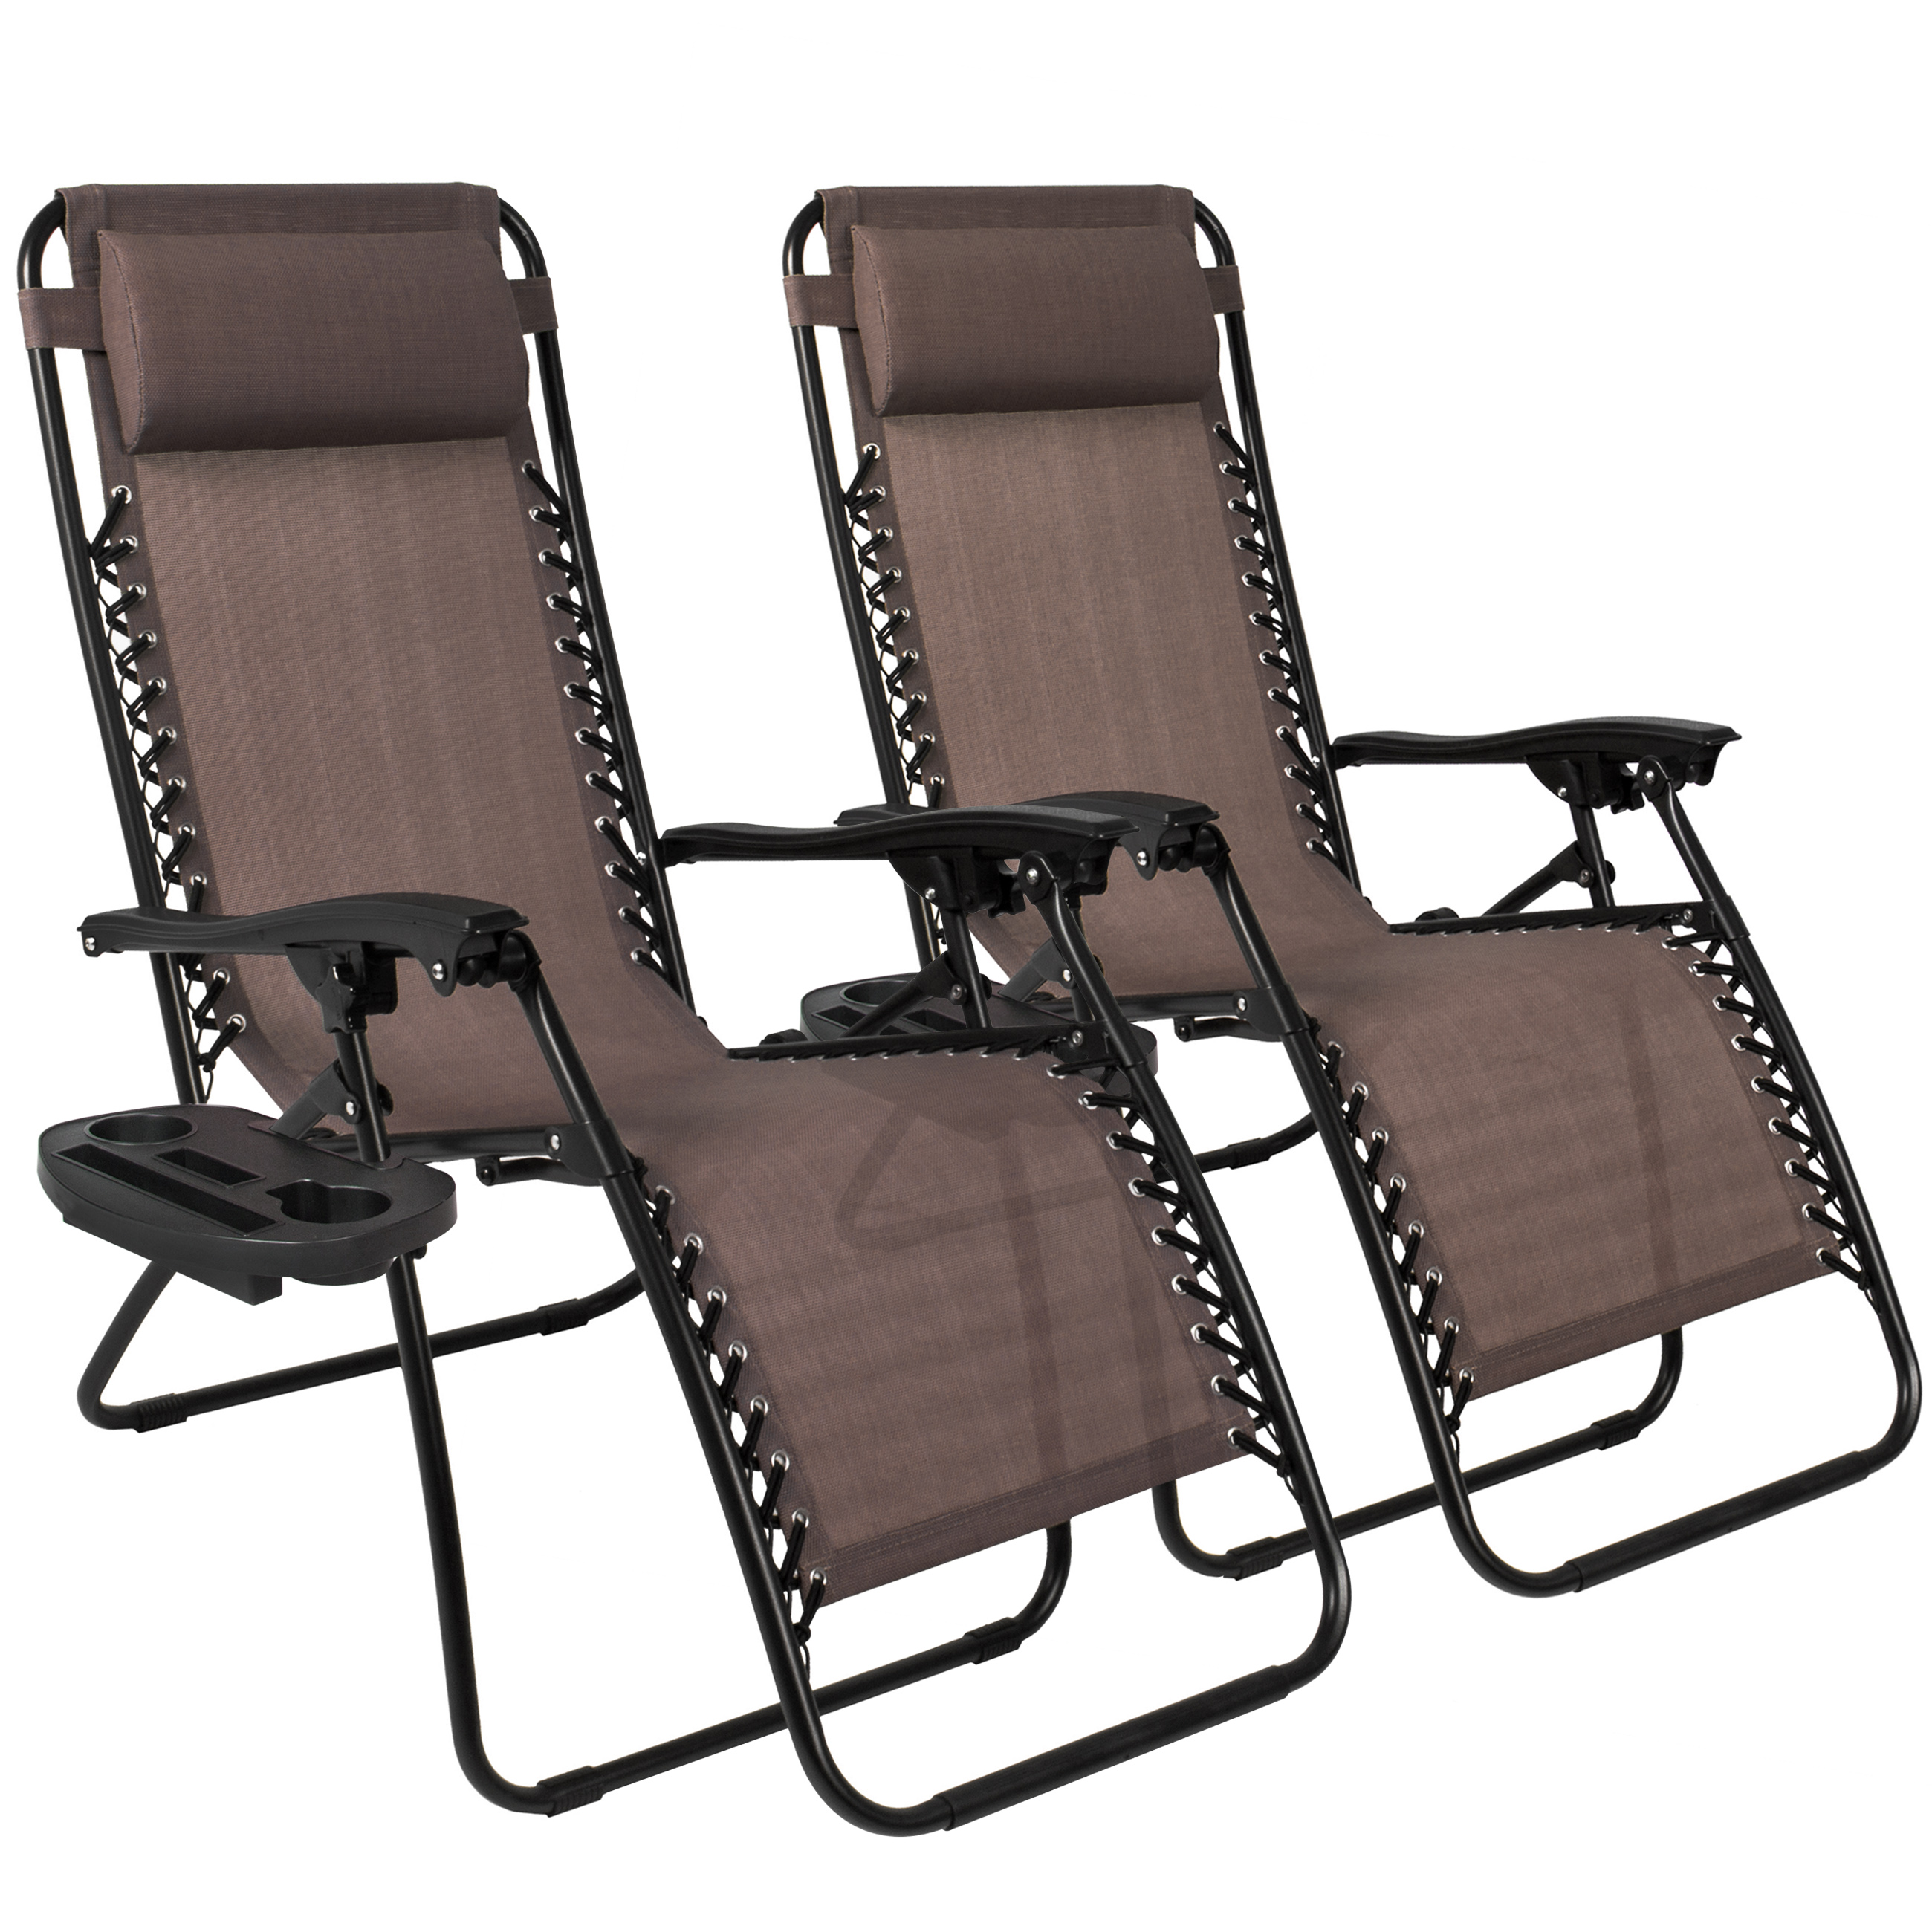 Best Choice Products Zero Gravity Chairs Case Of (2) Lounge Patio Chairs  Outdoor Yard